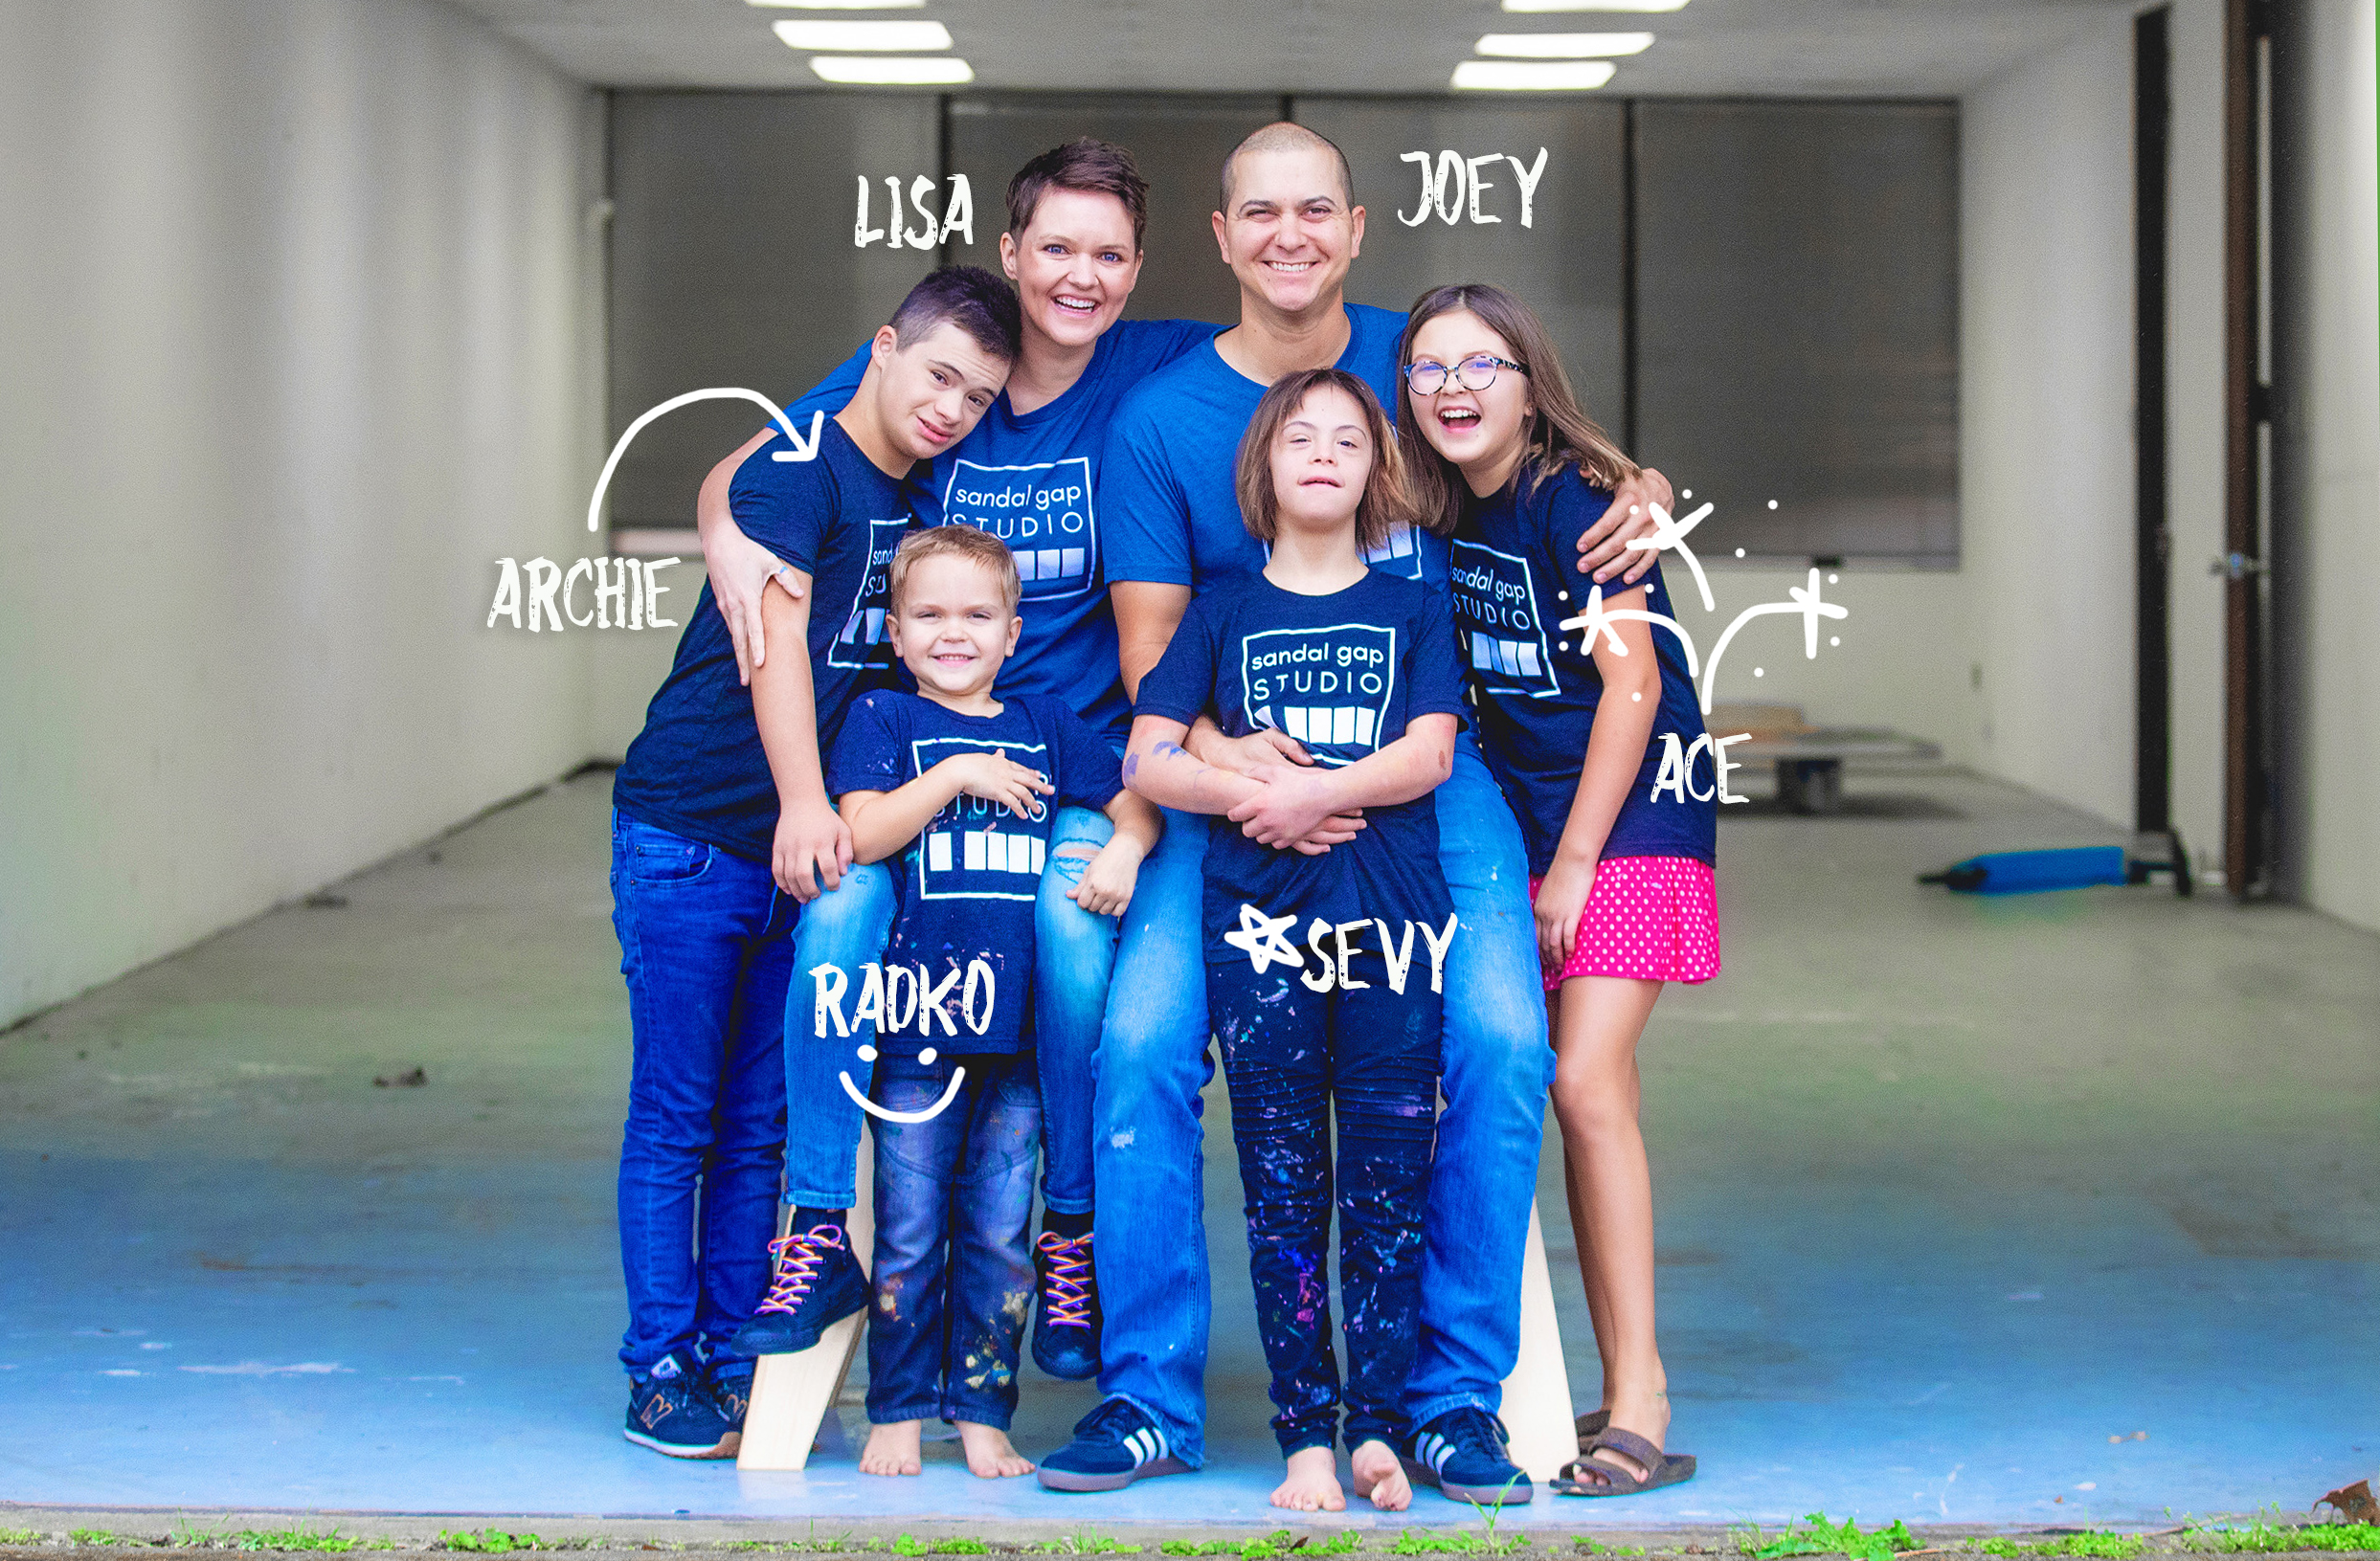 Down-Syndrome-Organization-Houston-Sandal-Gap-Studio-spryART-4623-family names.jpg